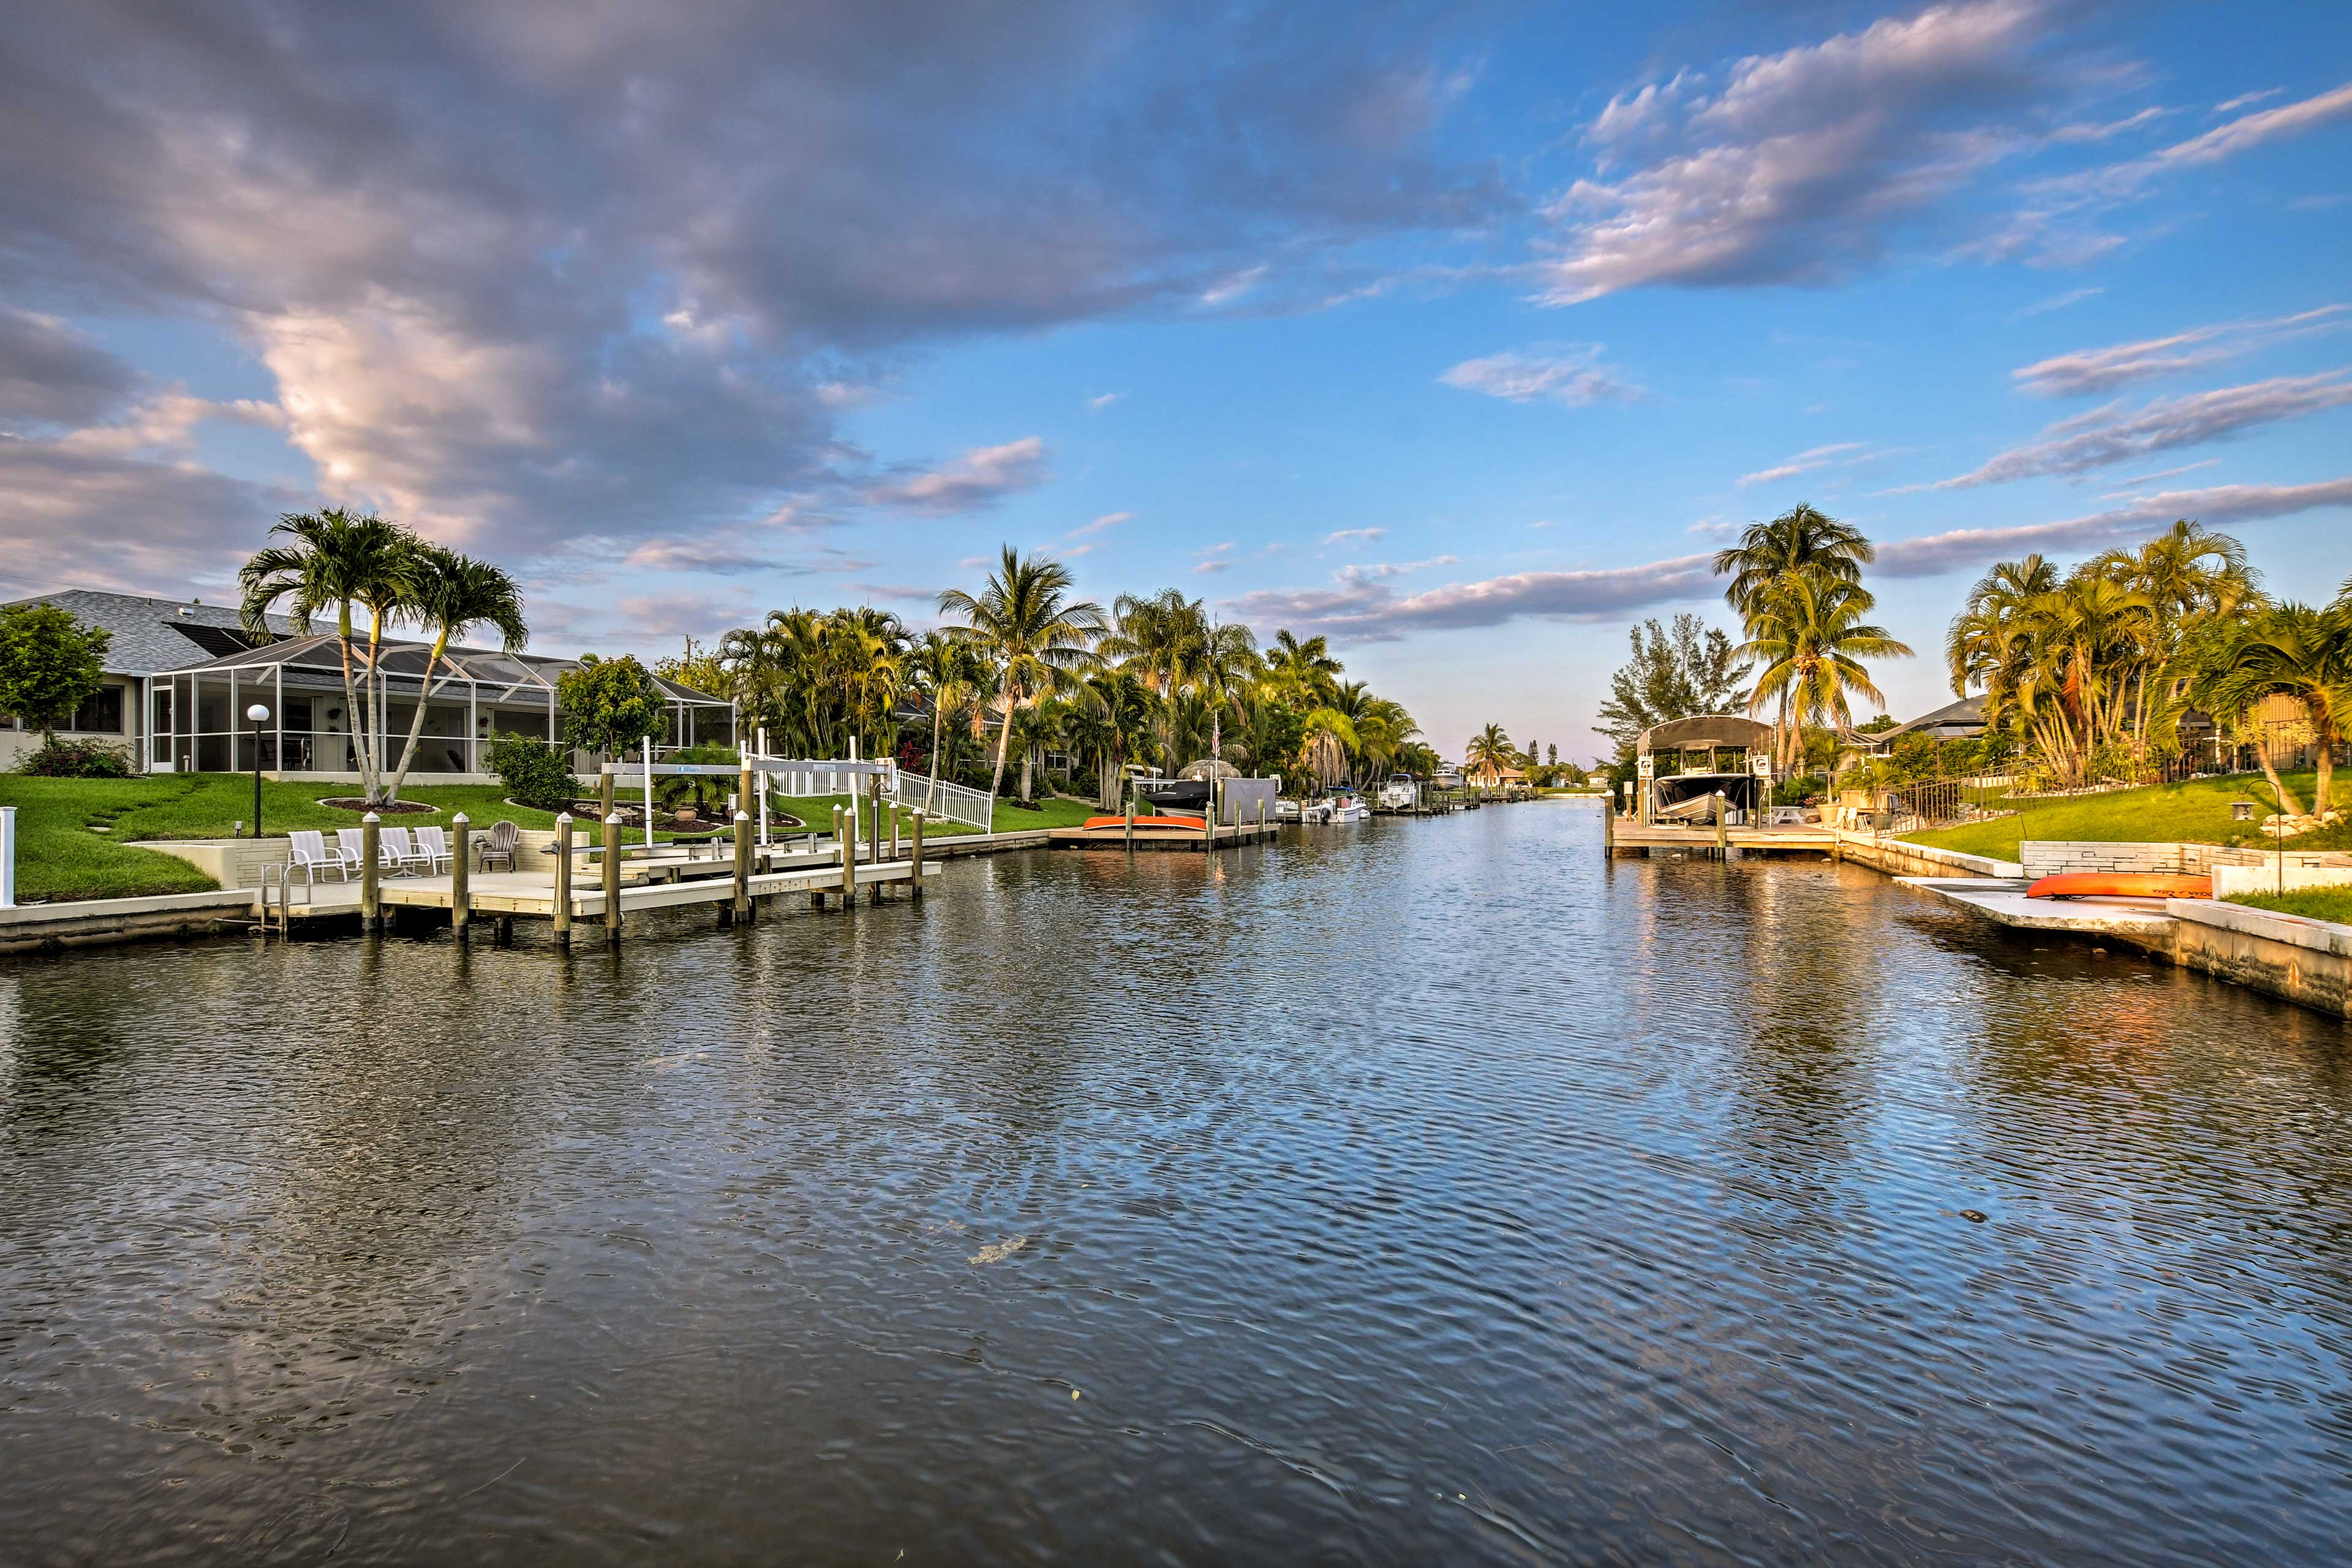 Wander down to the waterfront and dip your toes in the cool canal.